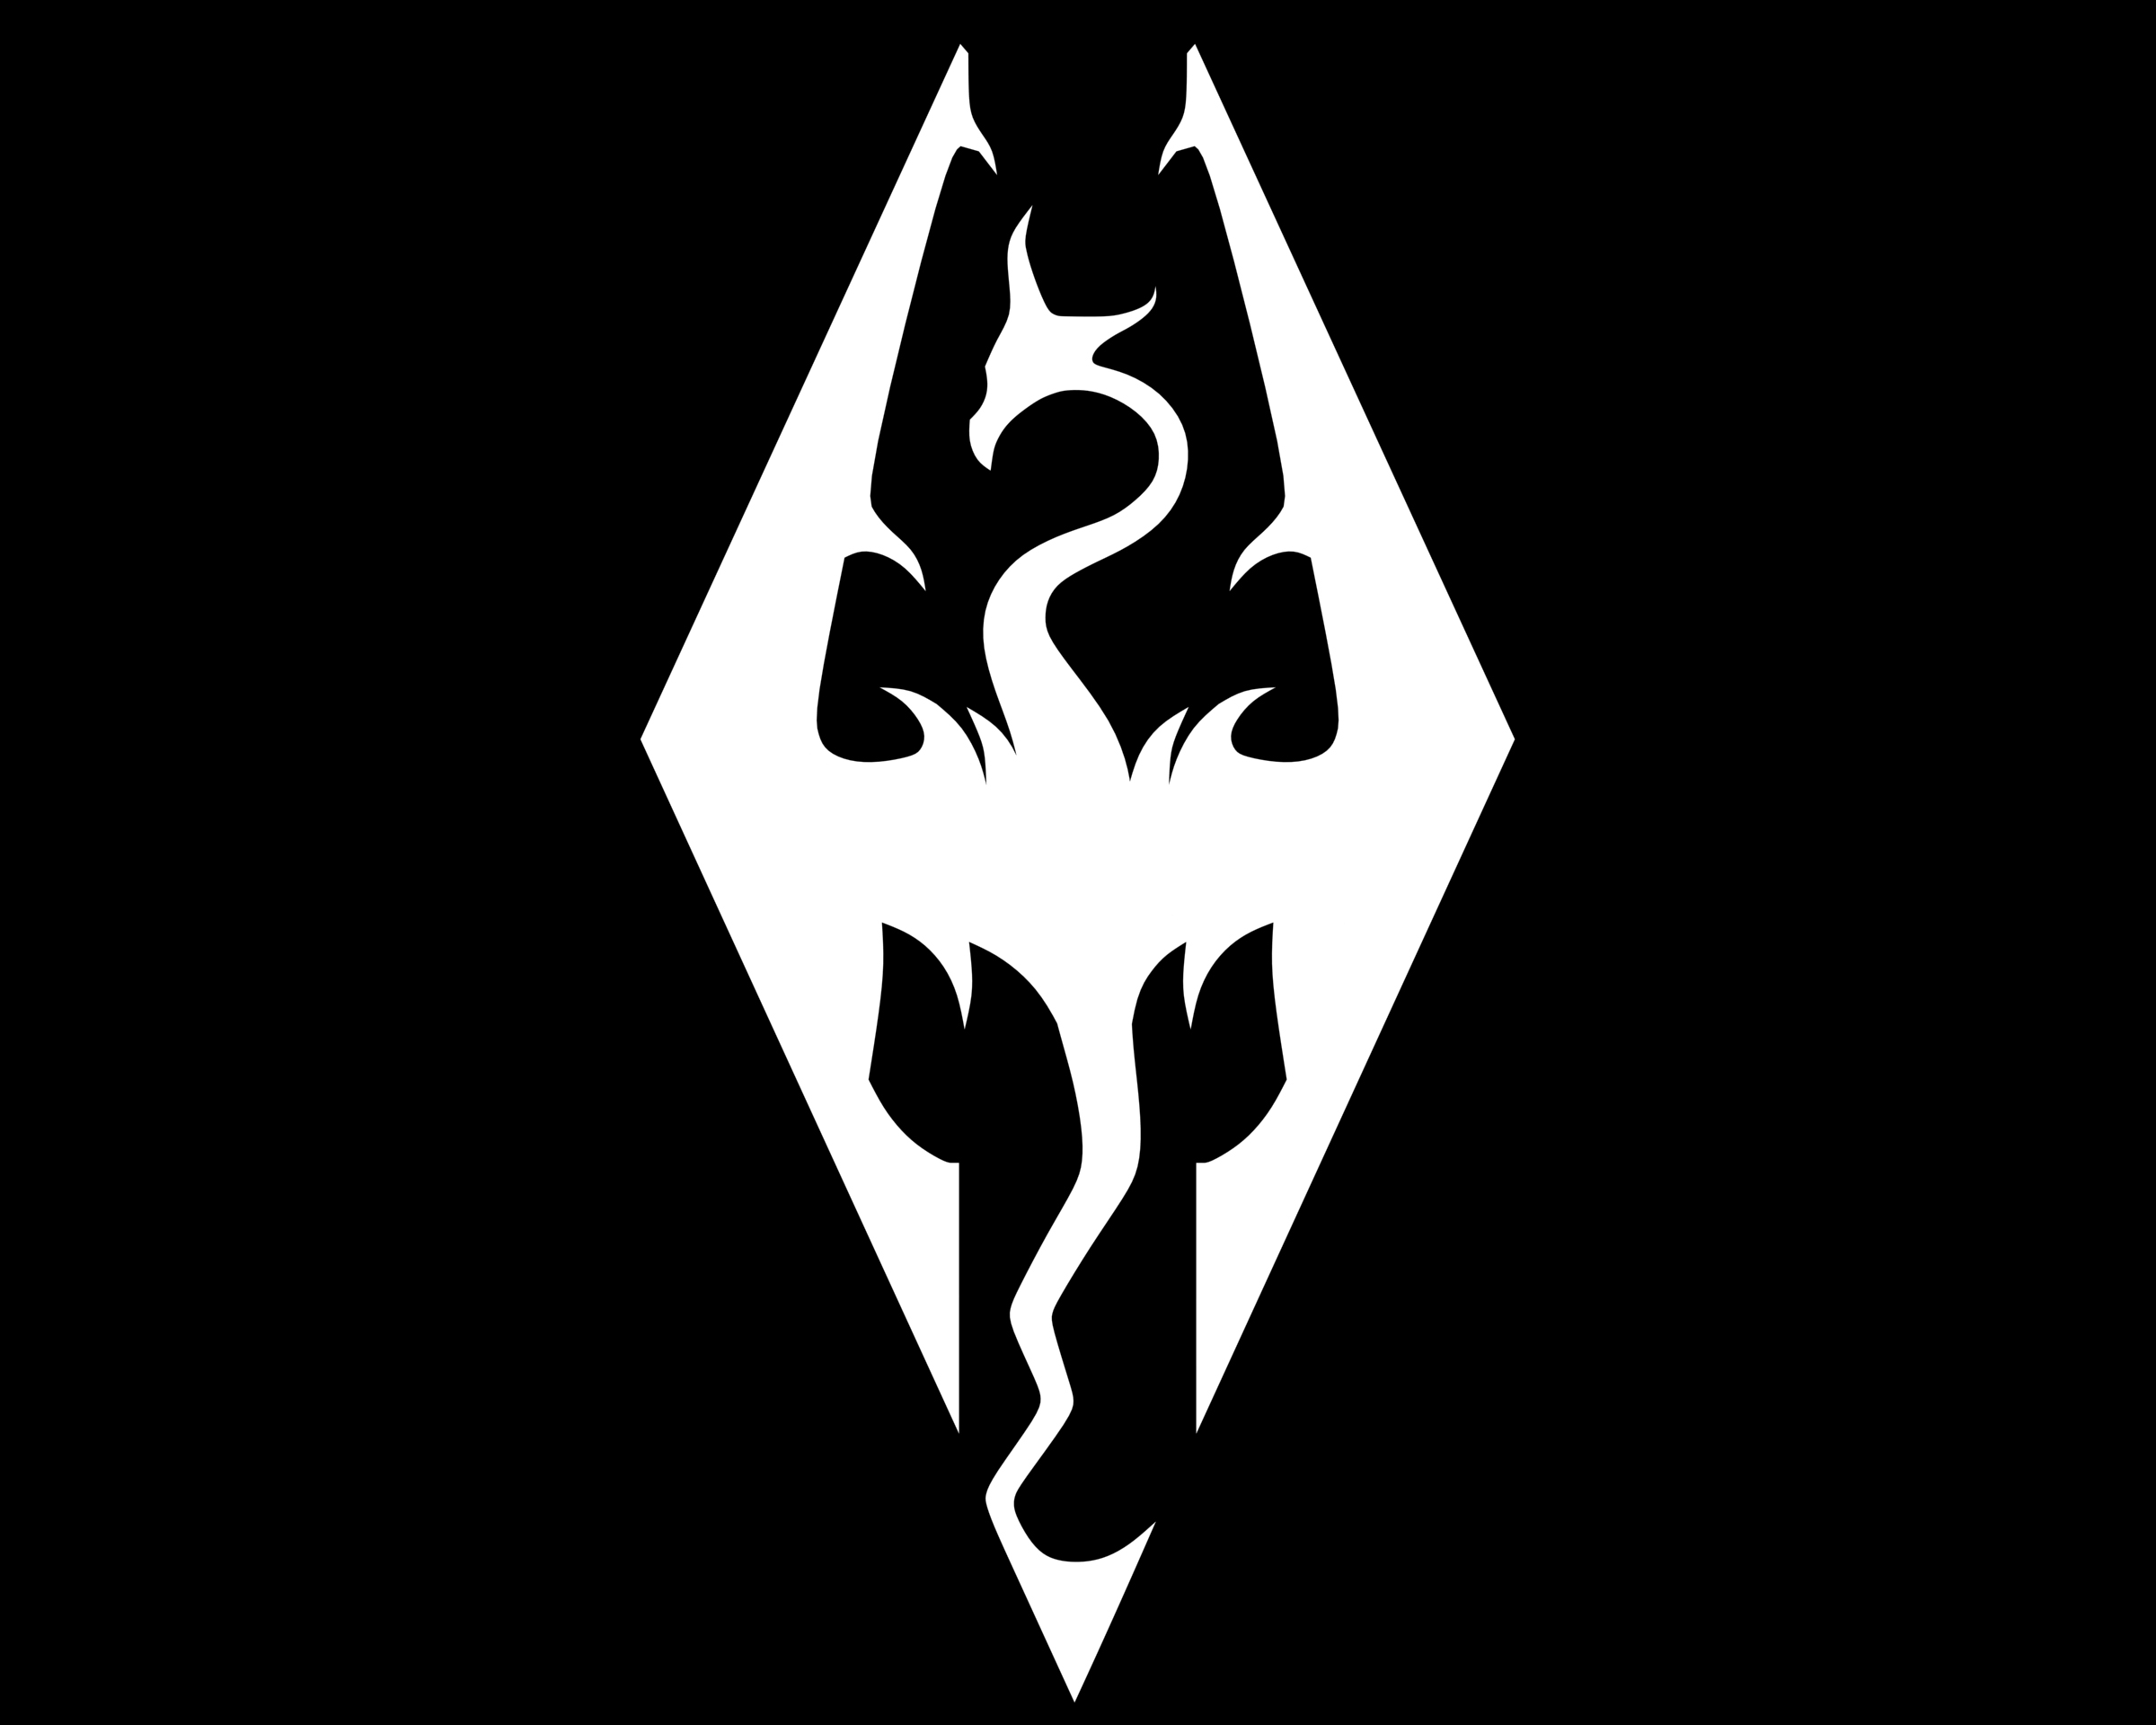 Meaning Skyrim logo and symbol.